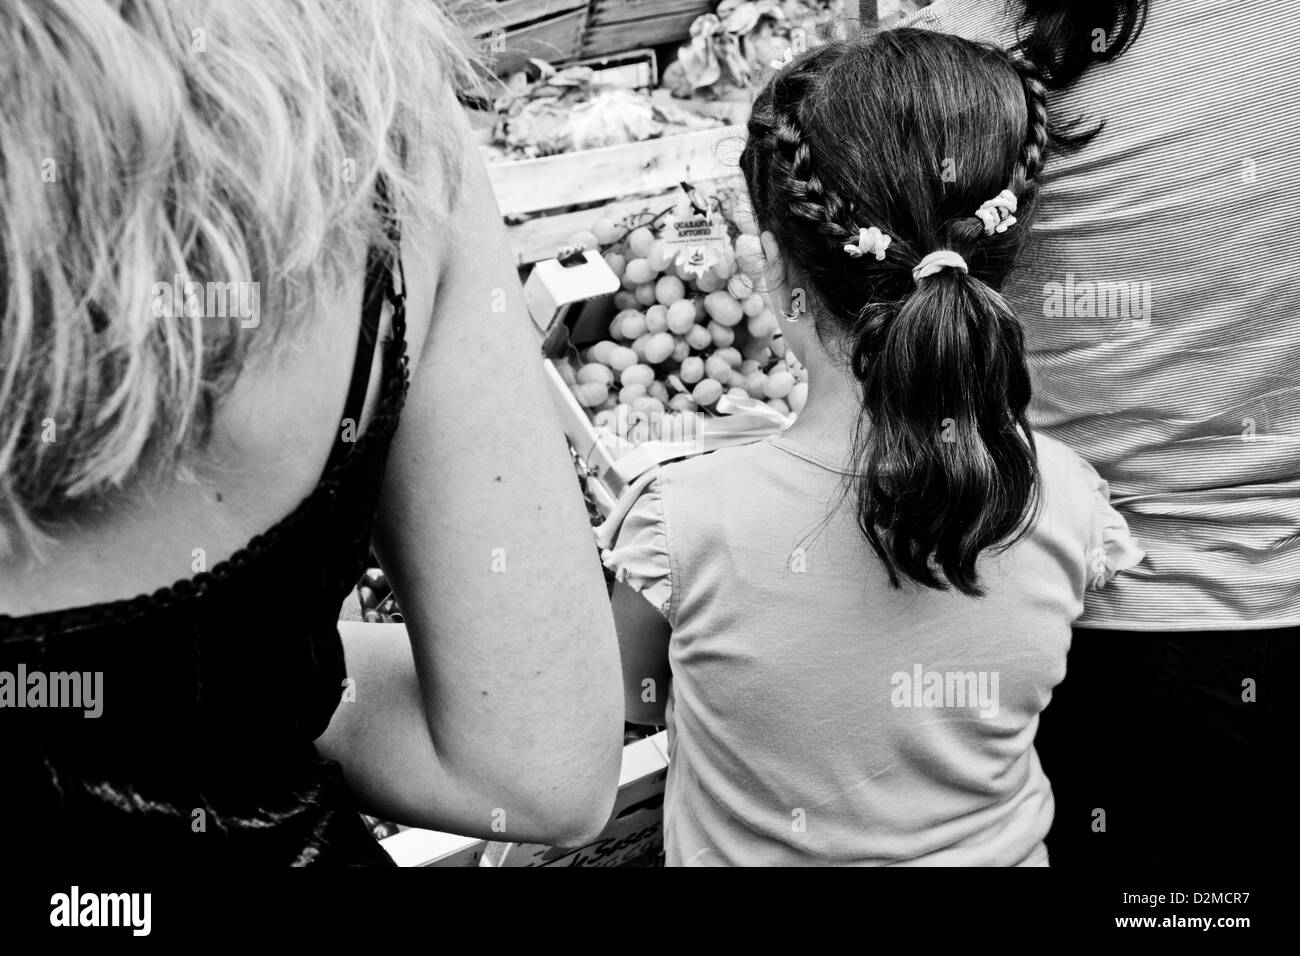 Women and a girl looking at fruit in Ballarò market, Palermo, Sicily - Stock Image